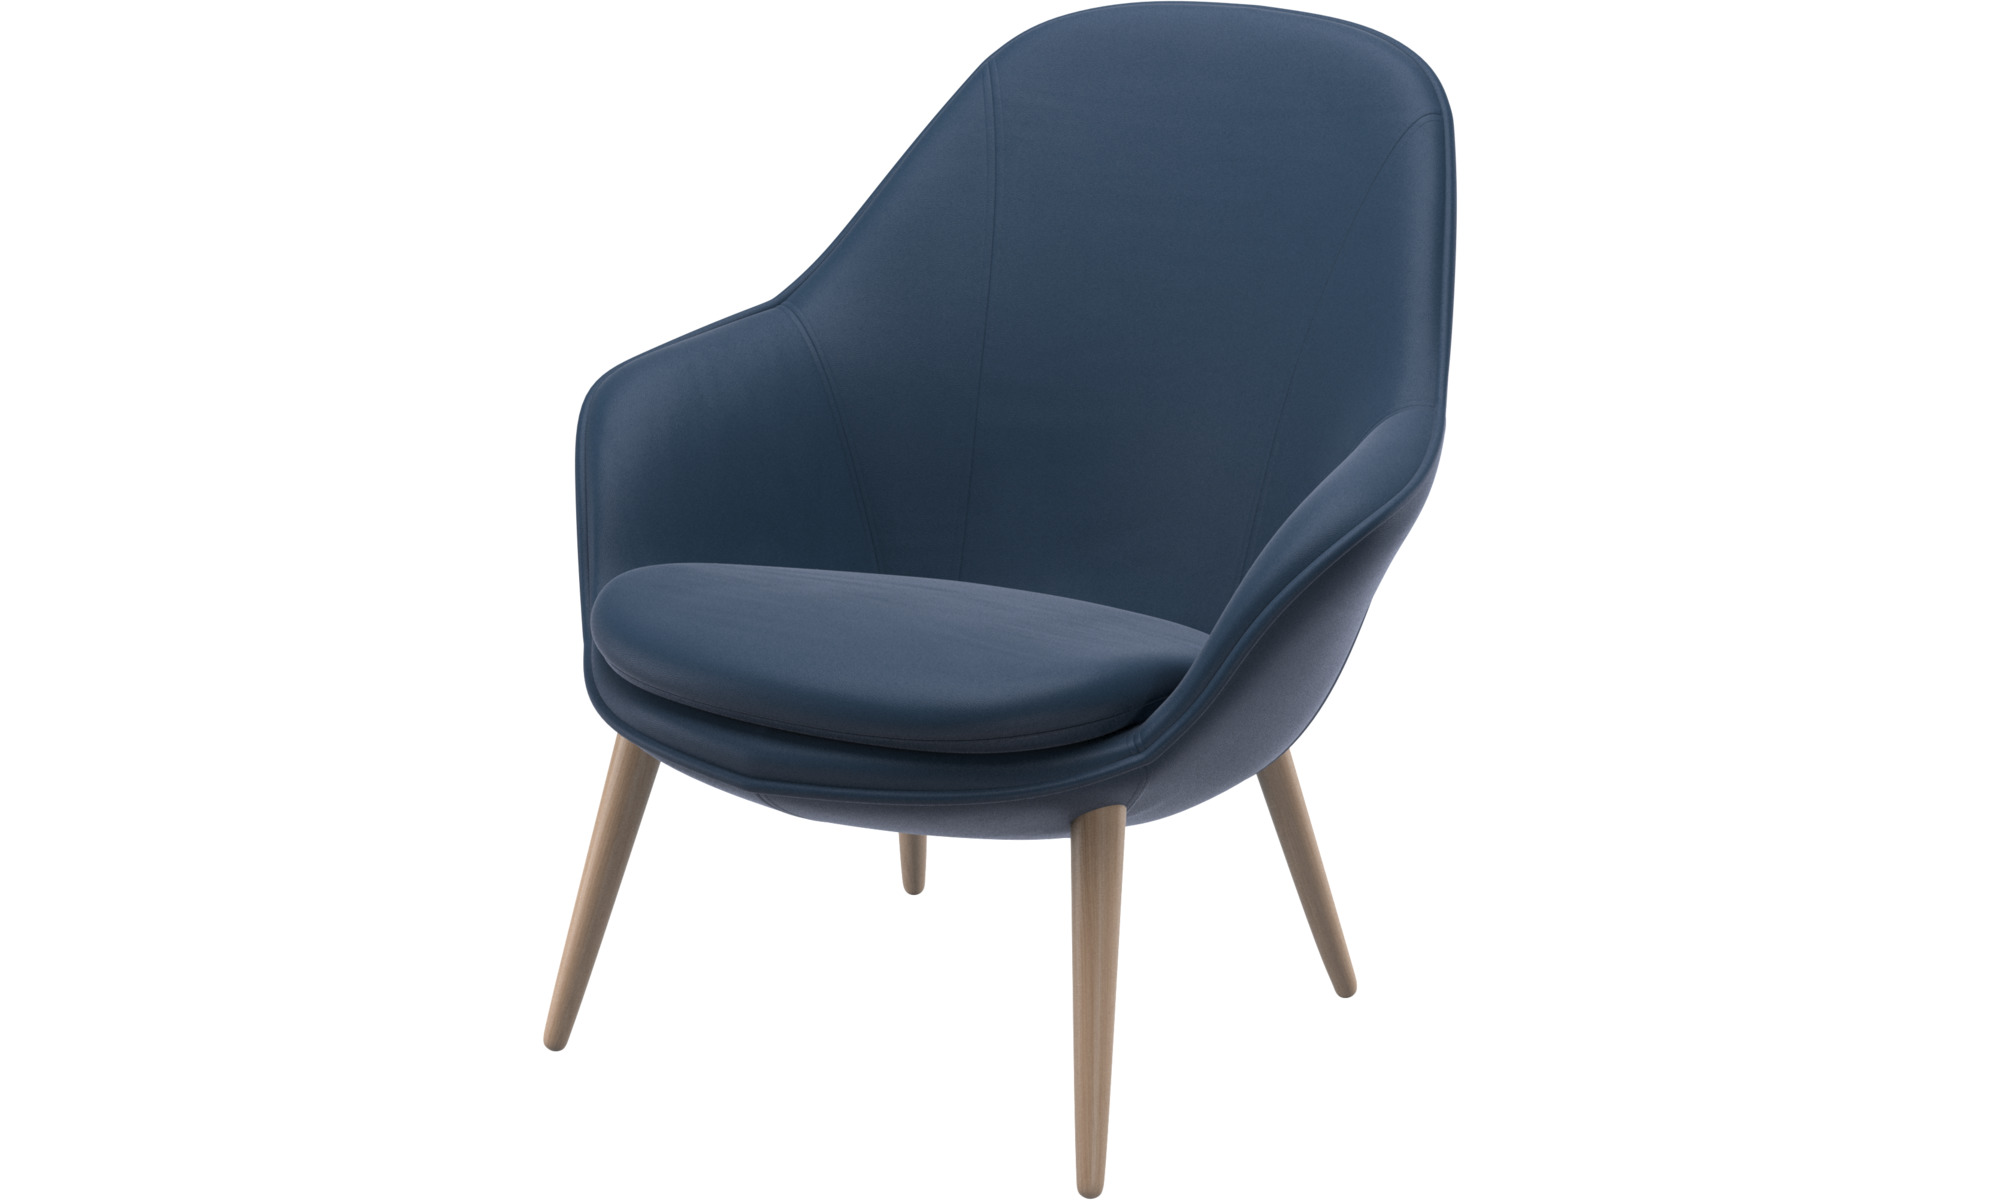 Armchairs - Adelaide living chair - Blue - Leather